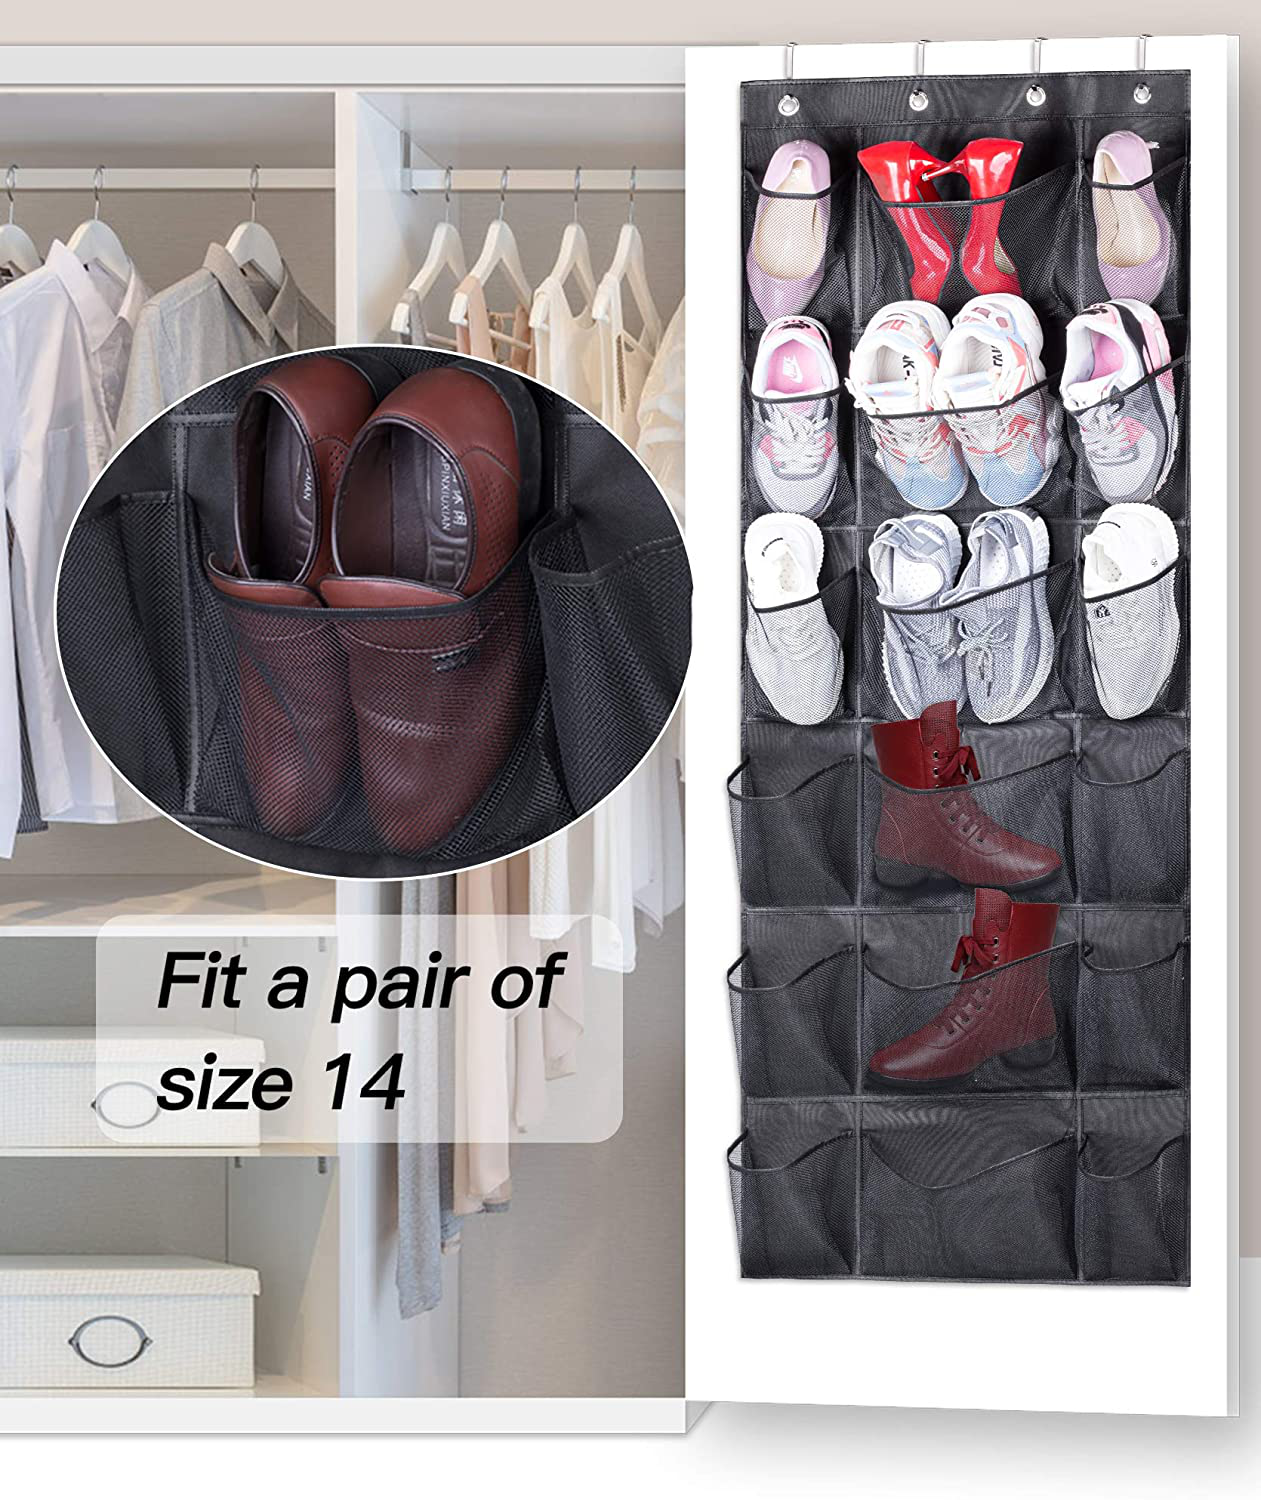 KEETDY Over The Door Shoe Rack Organizer 18 Pockets Hanging Shoe Organizer with 6 Extra Large Mesh Storage Pockets for Closet Shoe Holder,Black